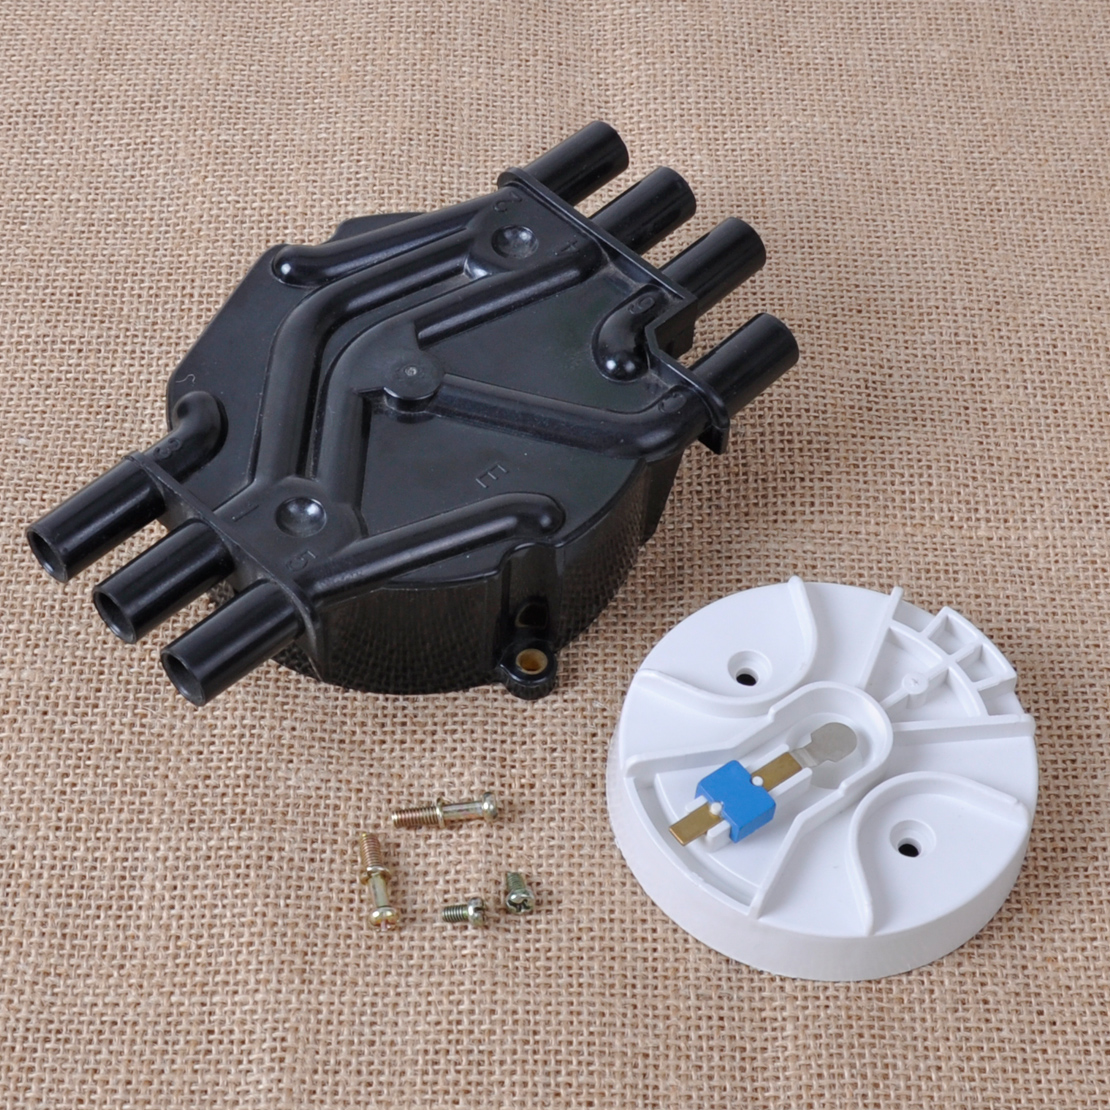 494dcc2a8a8 CITALL OEM 10452458 10452457 Ignition Distributor CAP Rotor for Chevrolet  Astro V6 4.3L 1996 2005 Blazer S10 V6 4.3L 1995 2005-in Electronic Ignition  from ...